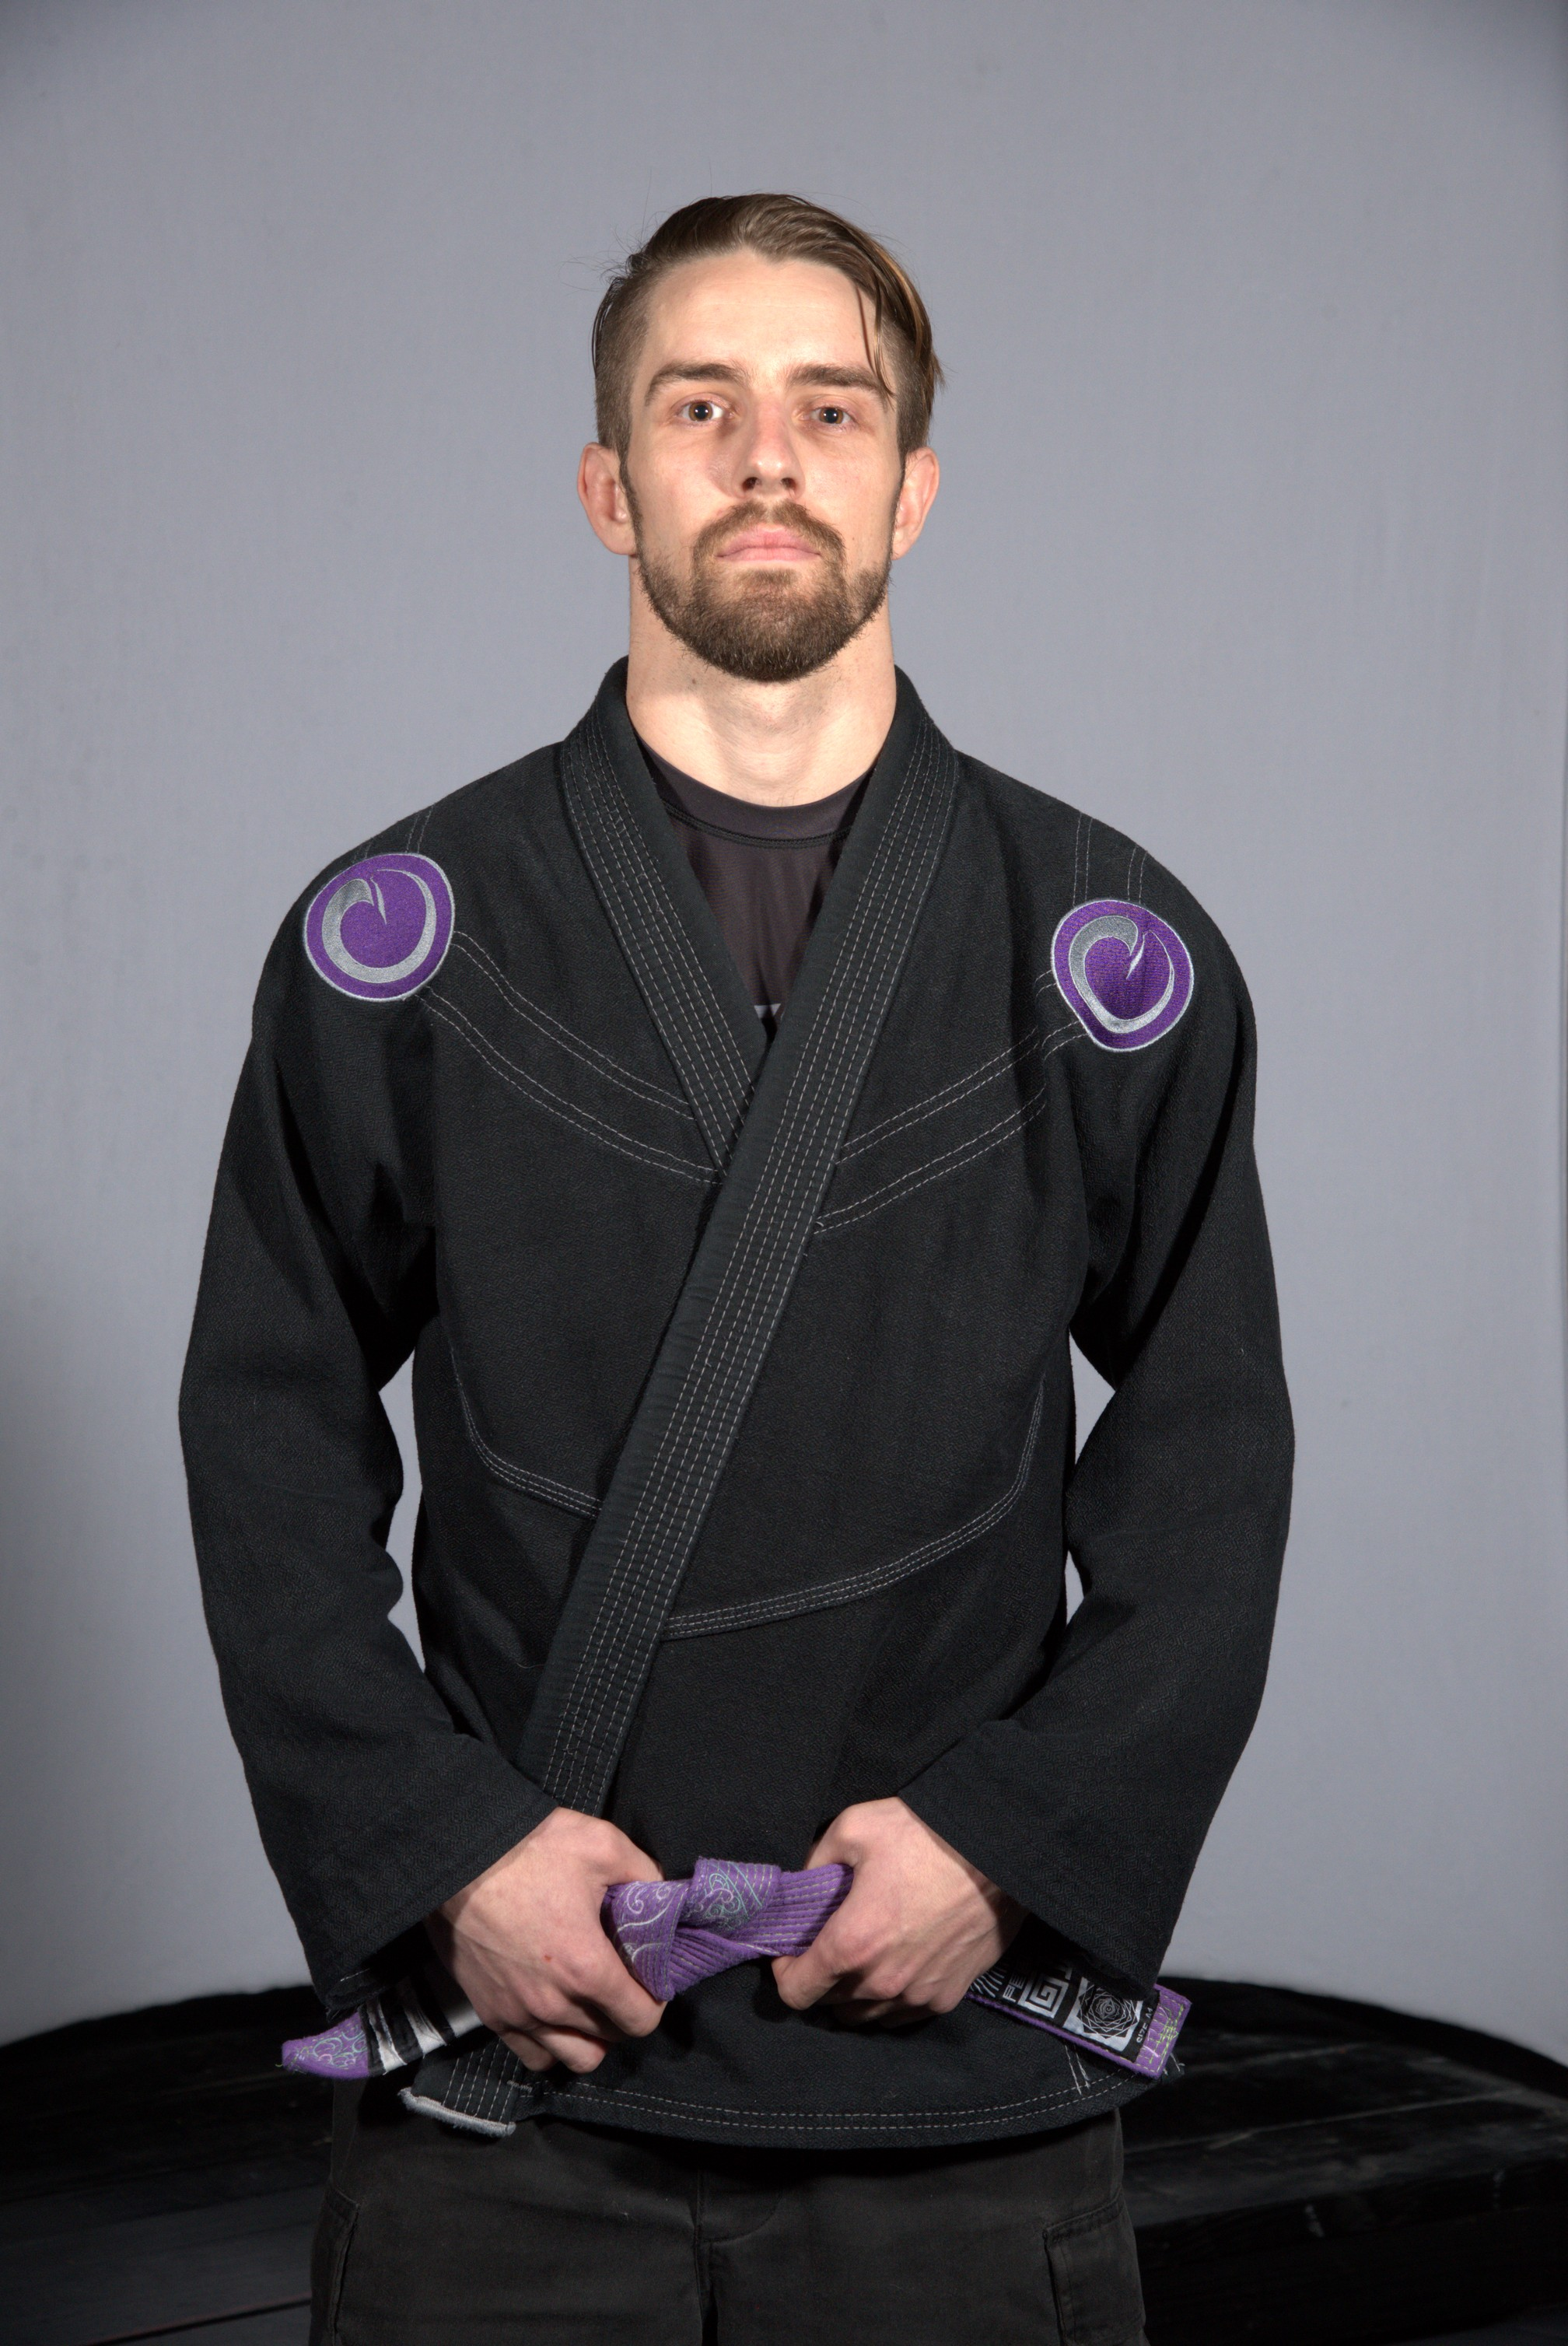 Coach Zach Lussier Kids Brazilian Jiujitsu Instructor